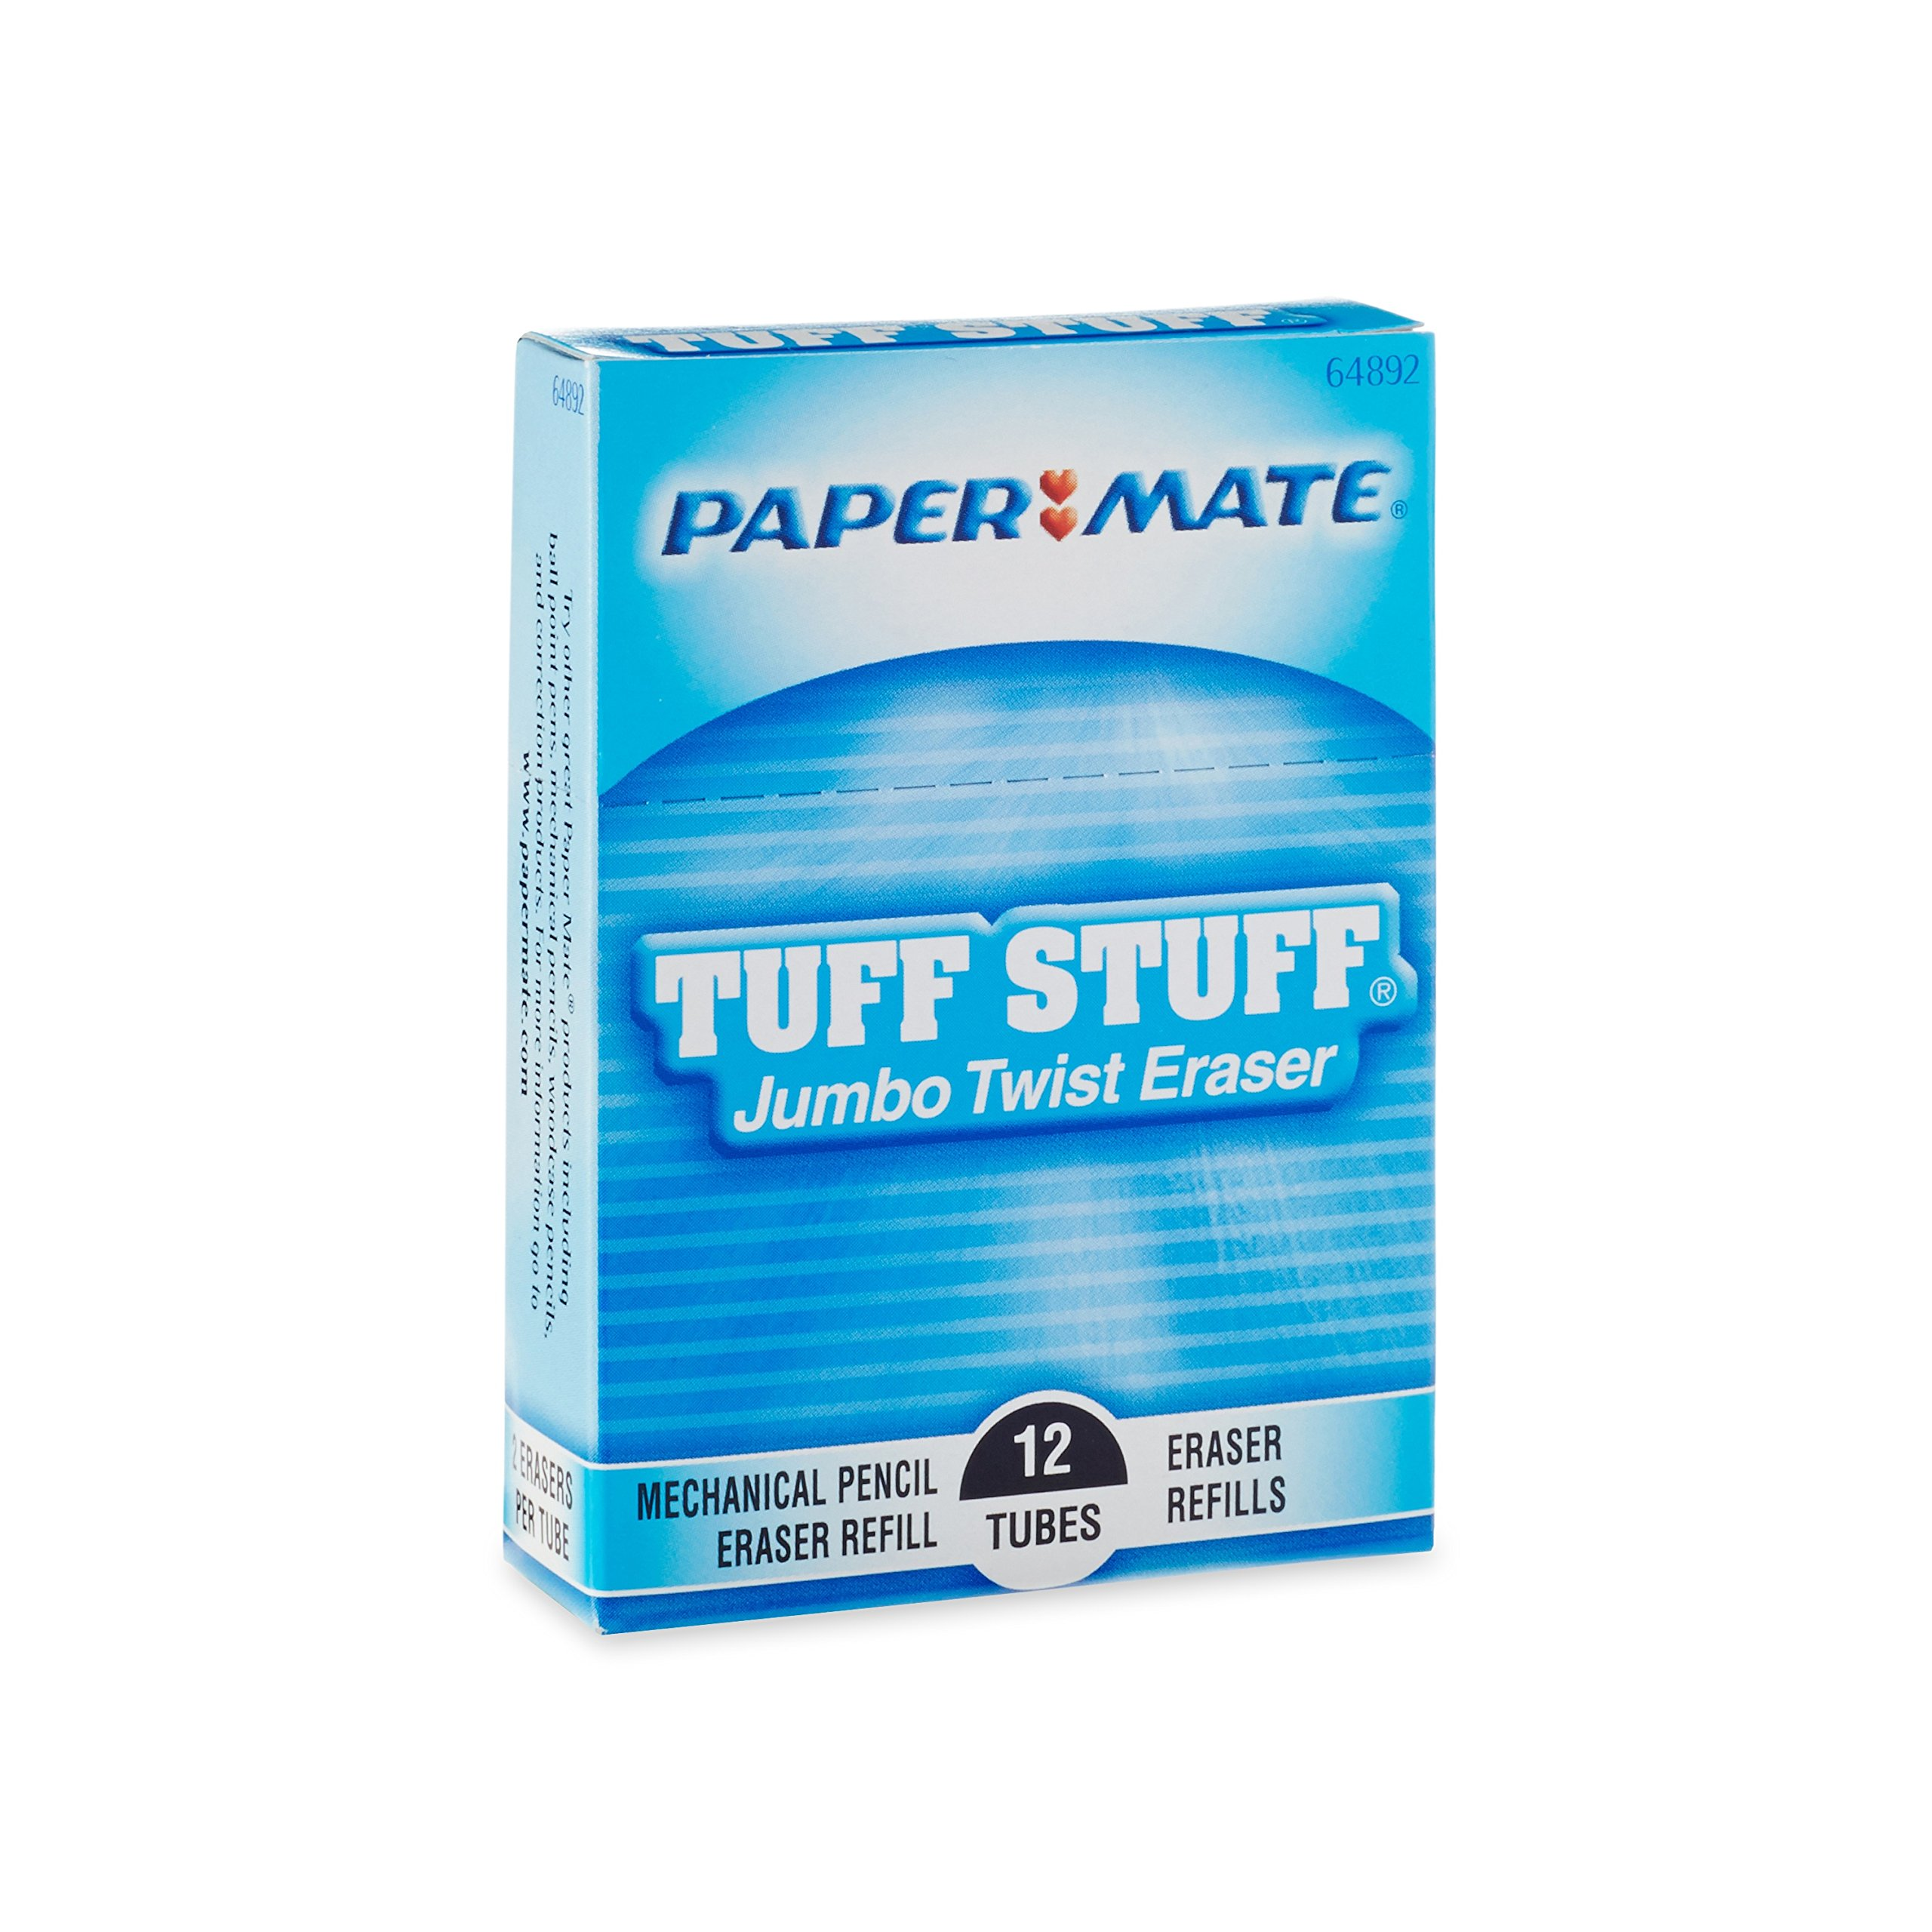 Paper Mate Jumbo Twist Eraser, Pack of 12 (64881) by PAPER MATE